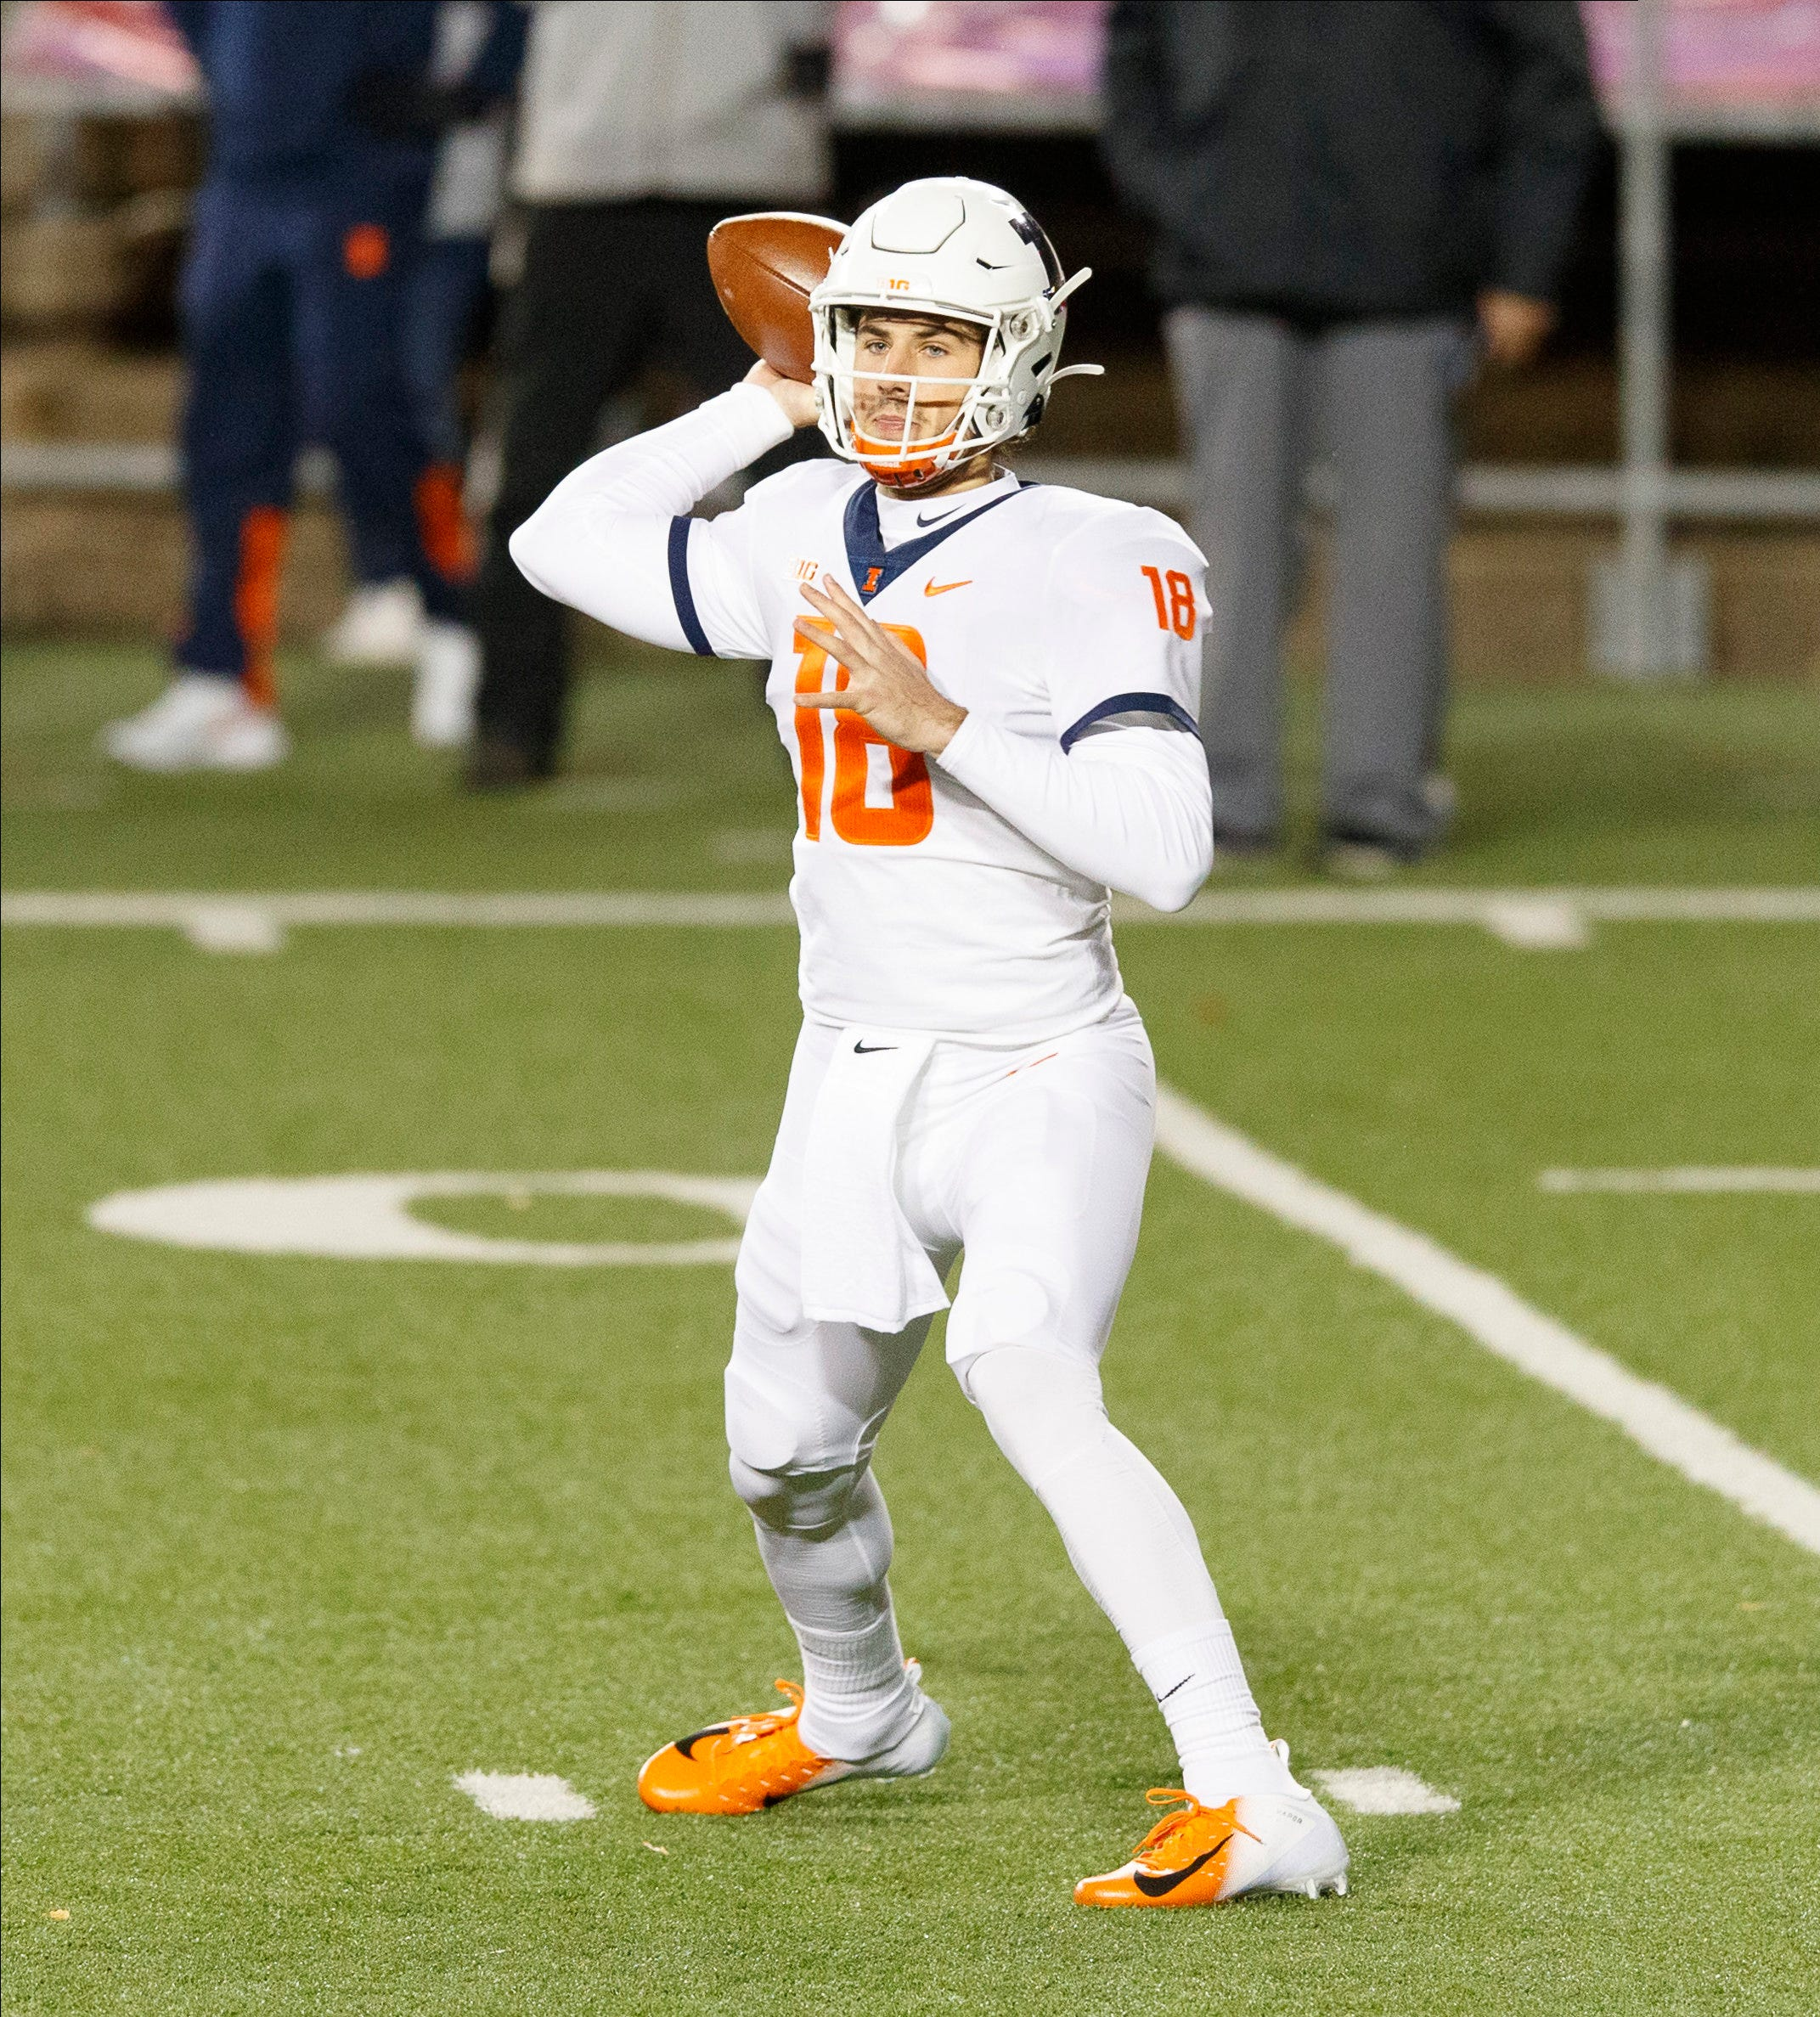 Two Illinois football players, including starting QB Brandon Peters, test positive for COVID-19